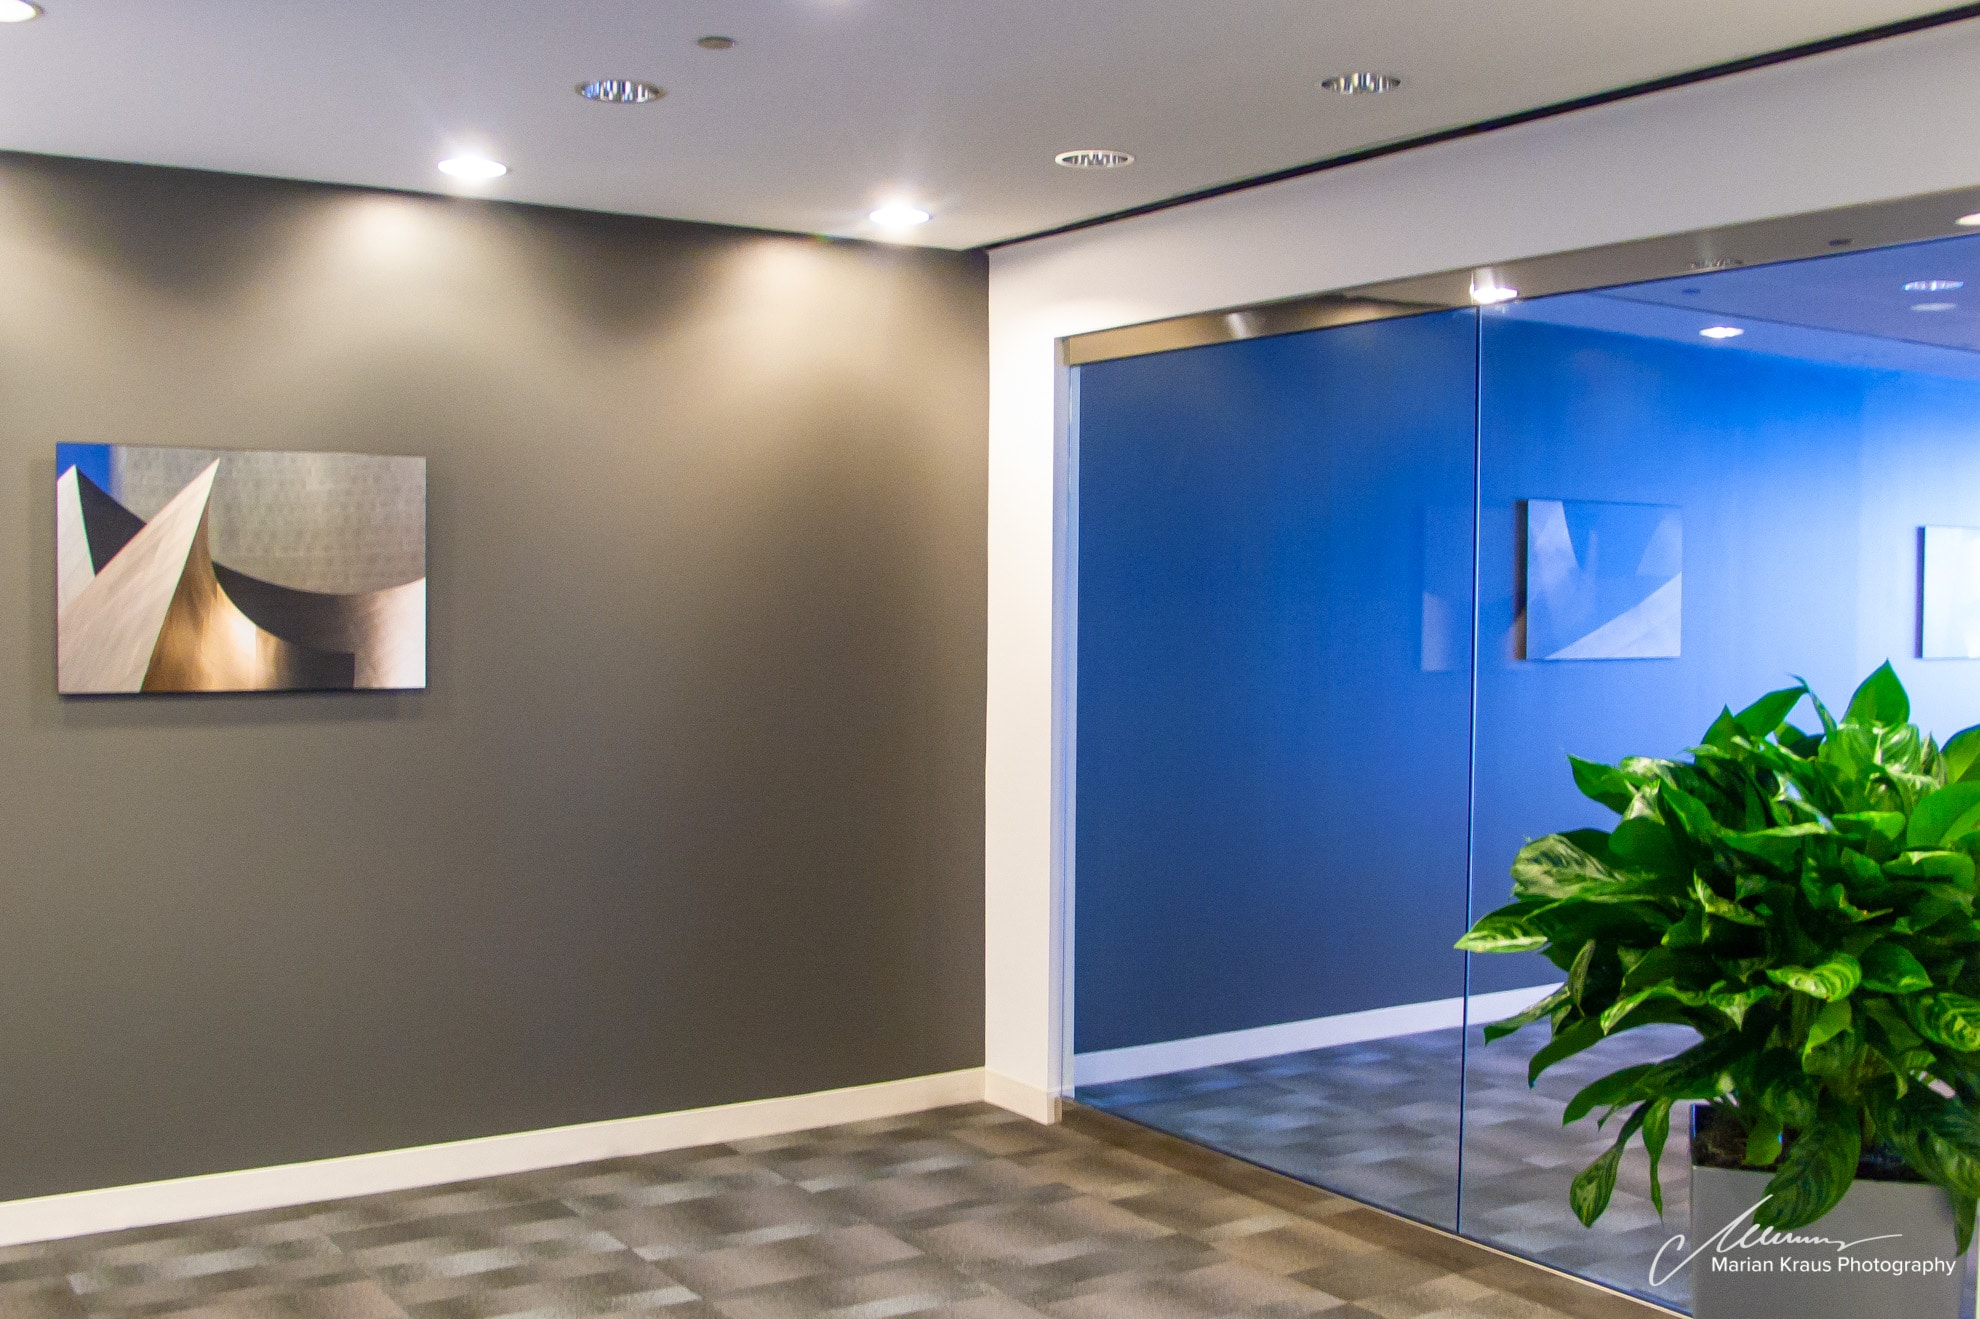 wall art for office space. Office Space Wall Art Decoration In The Willis Tower Chicago, IL For Office